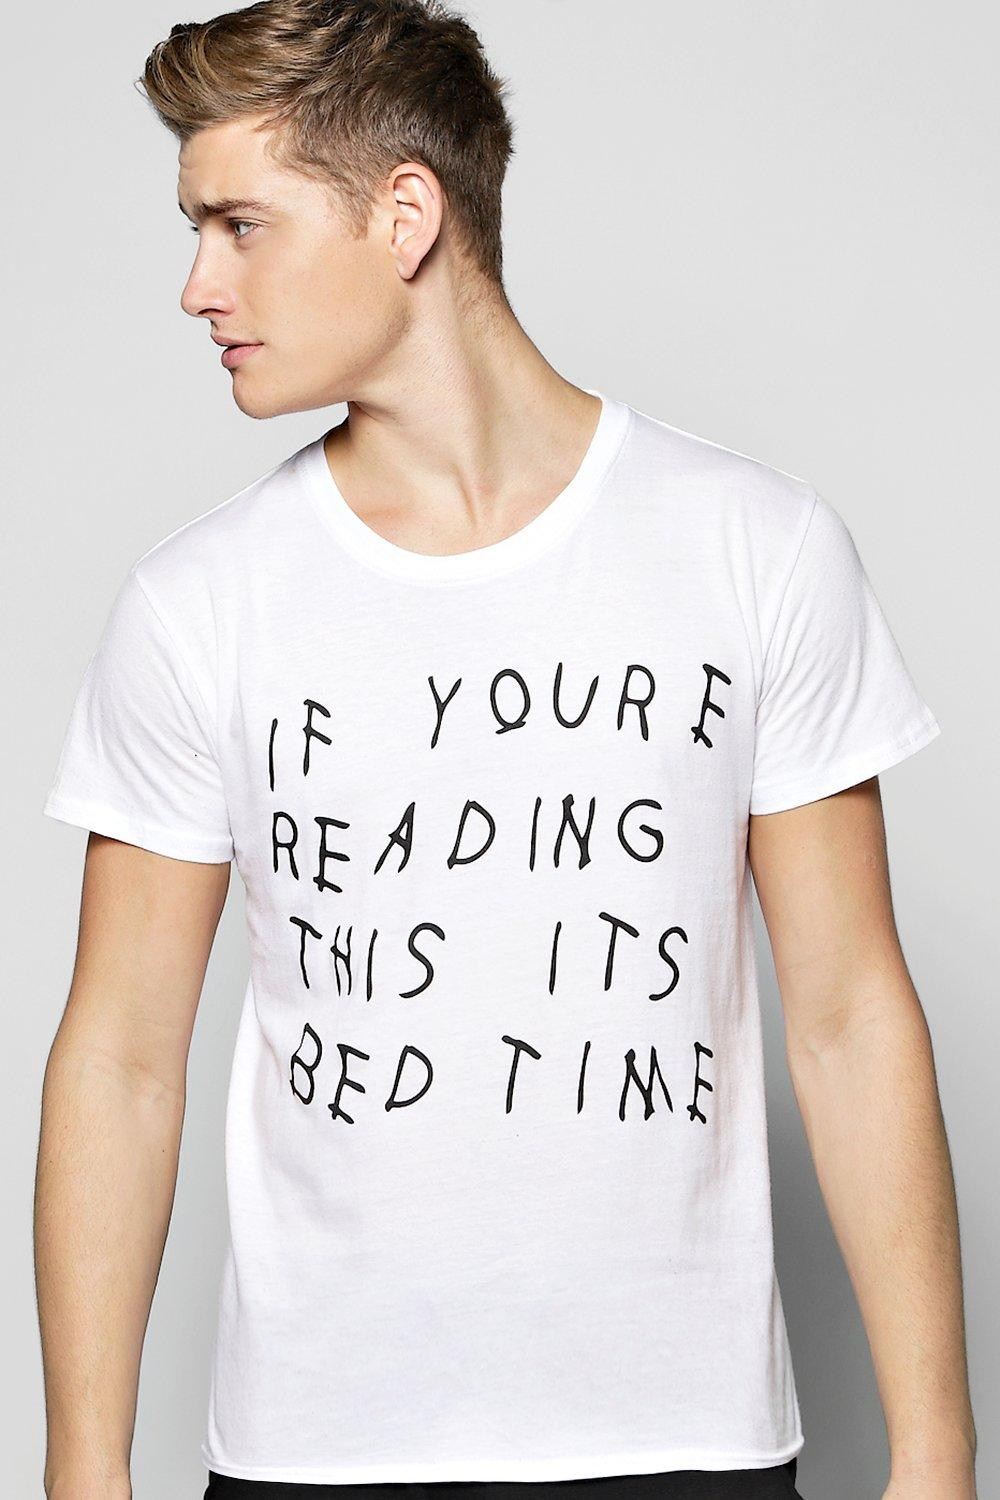 If You're Reading This It's Bedtime Lounge T shirt